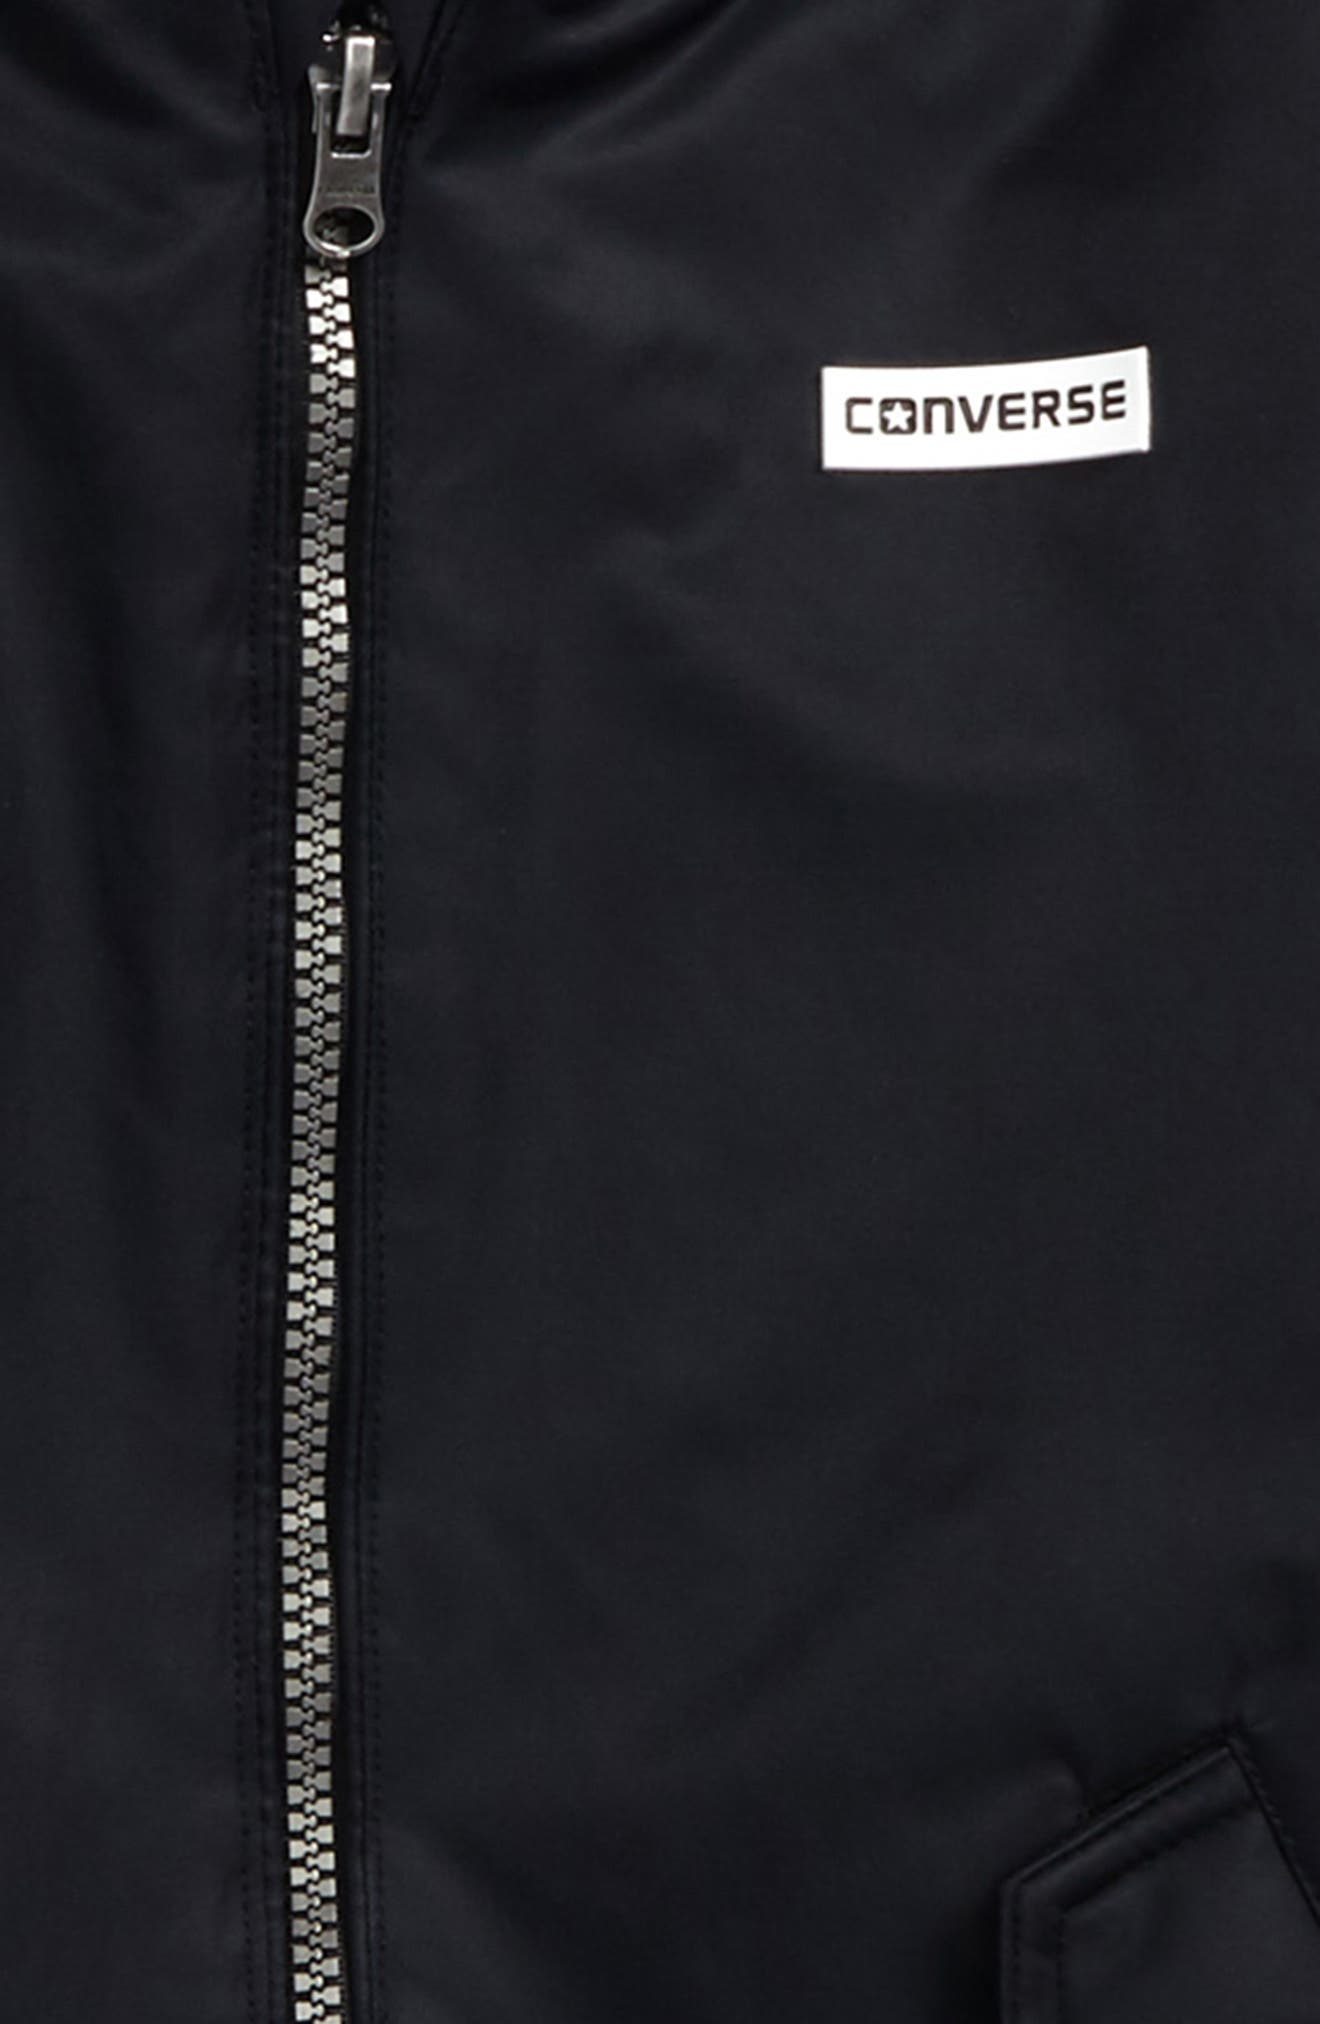 MA-1 Water Repellent Bomber Jacket,                             Alternate thumbnail 3, color,                             001